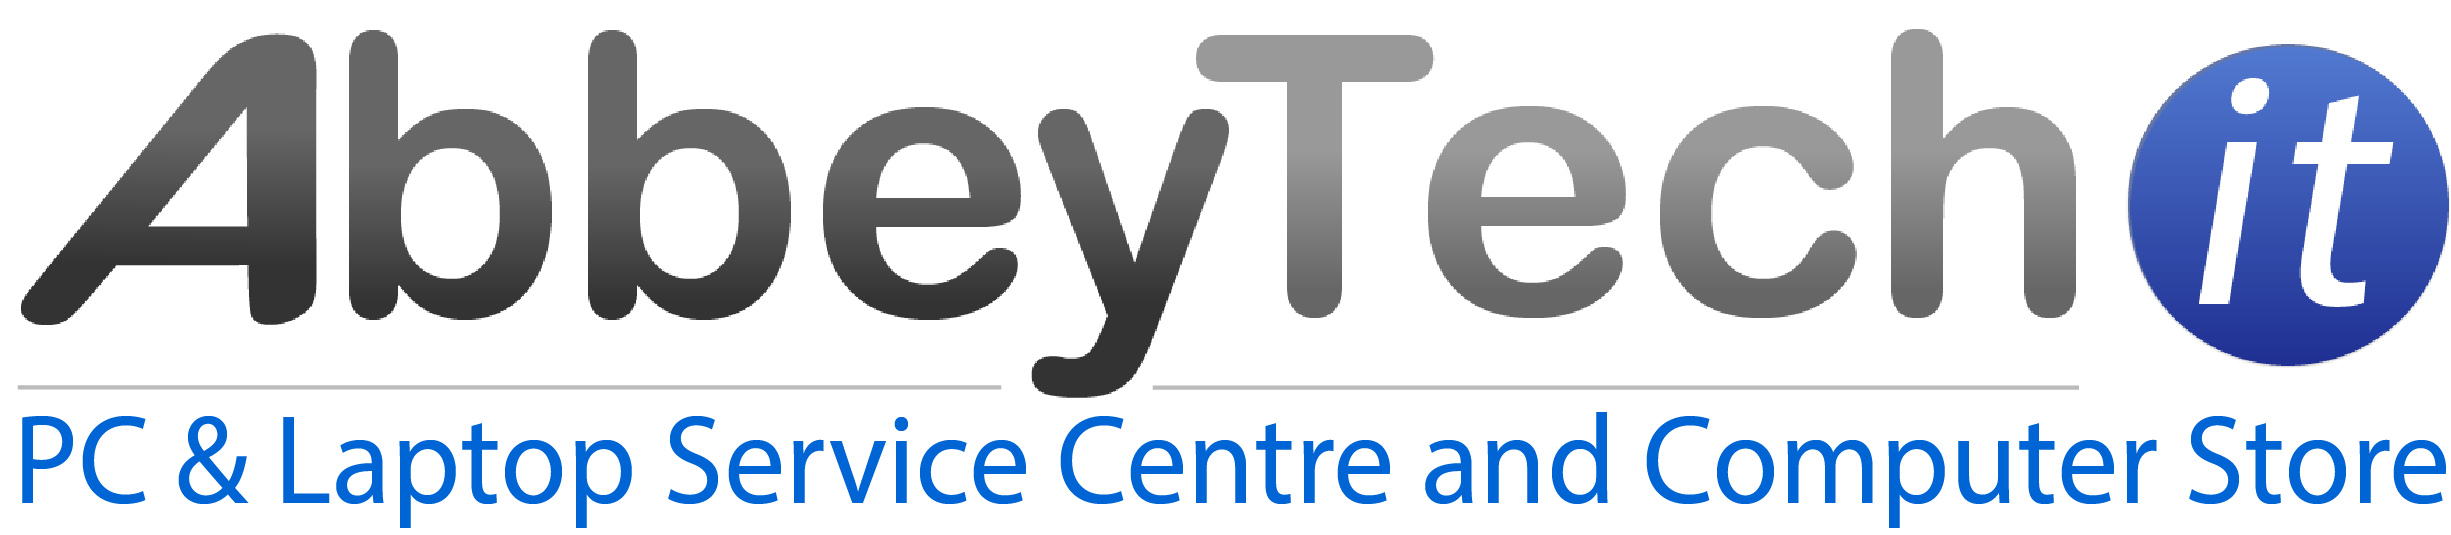 AbbeyTech IT Ltd